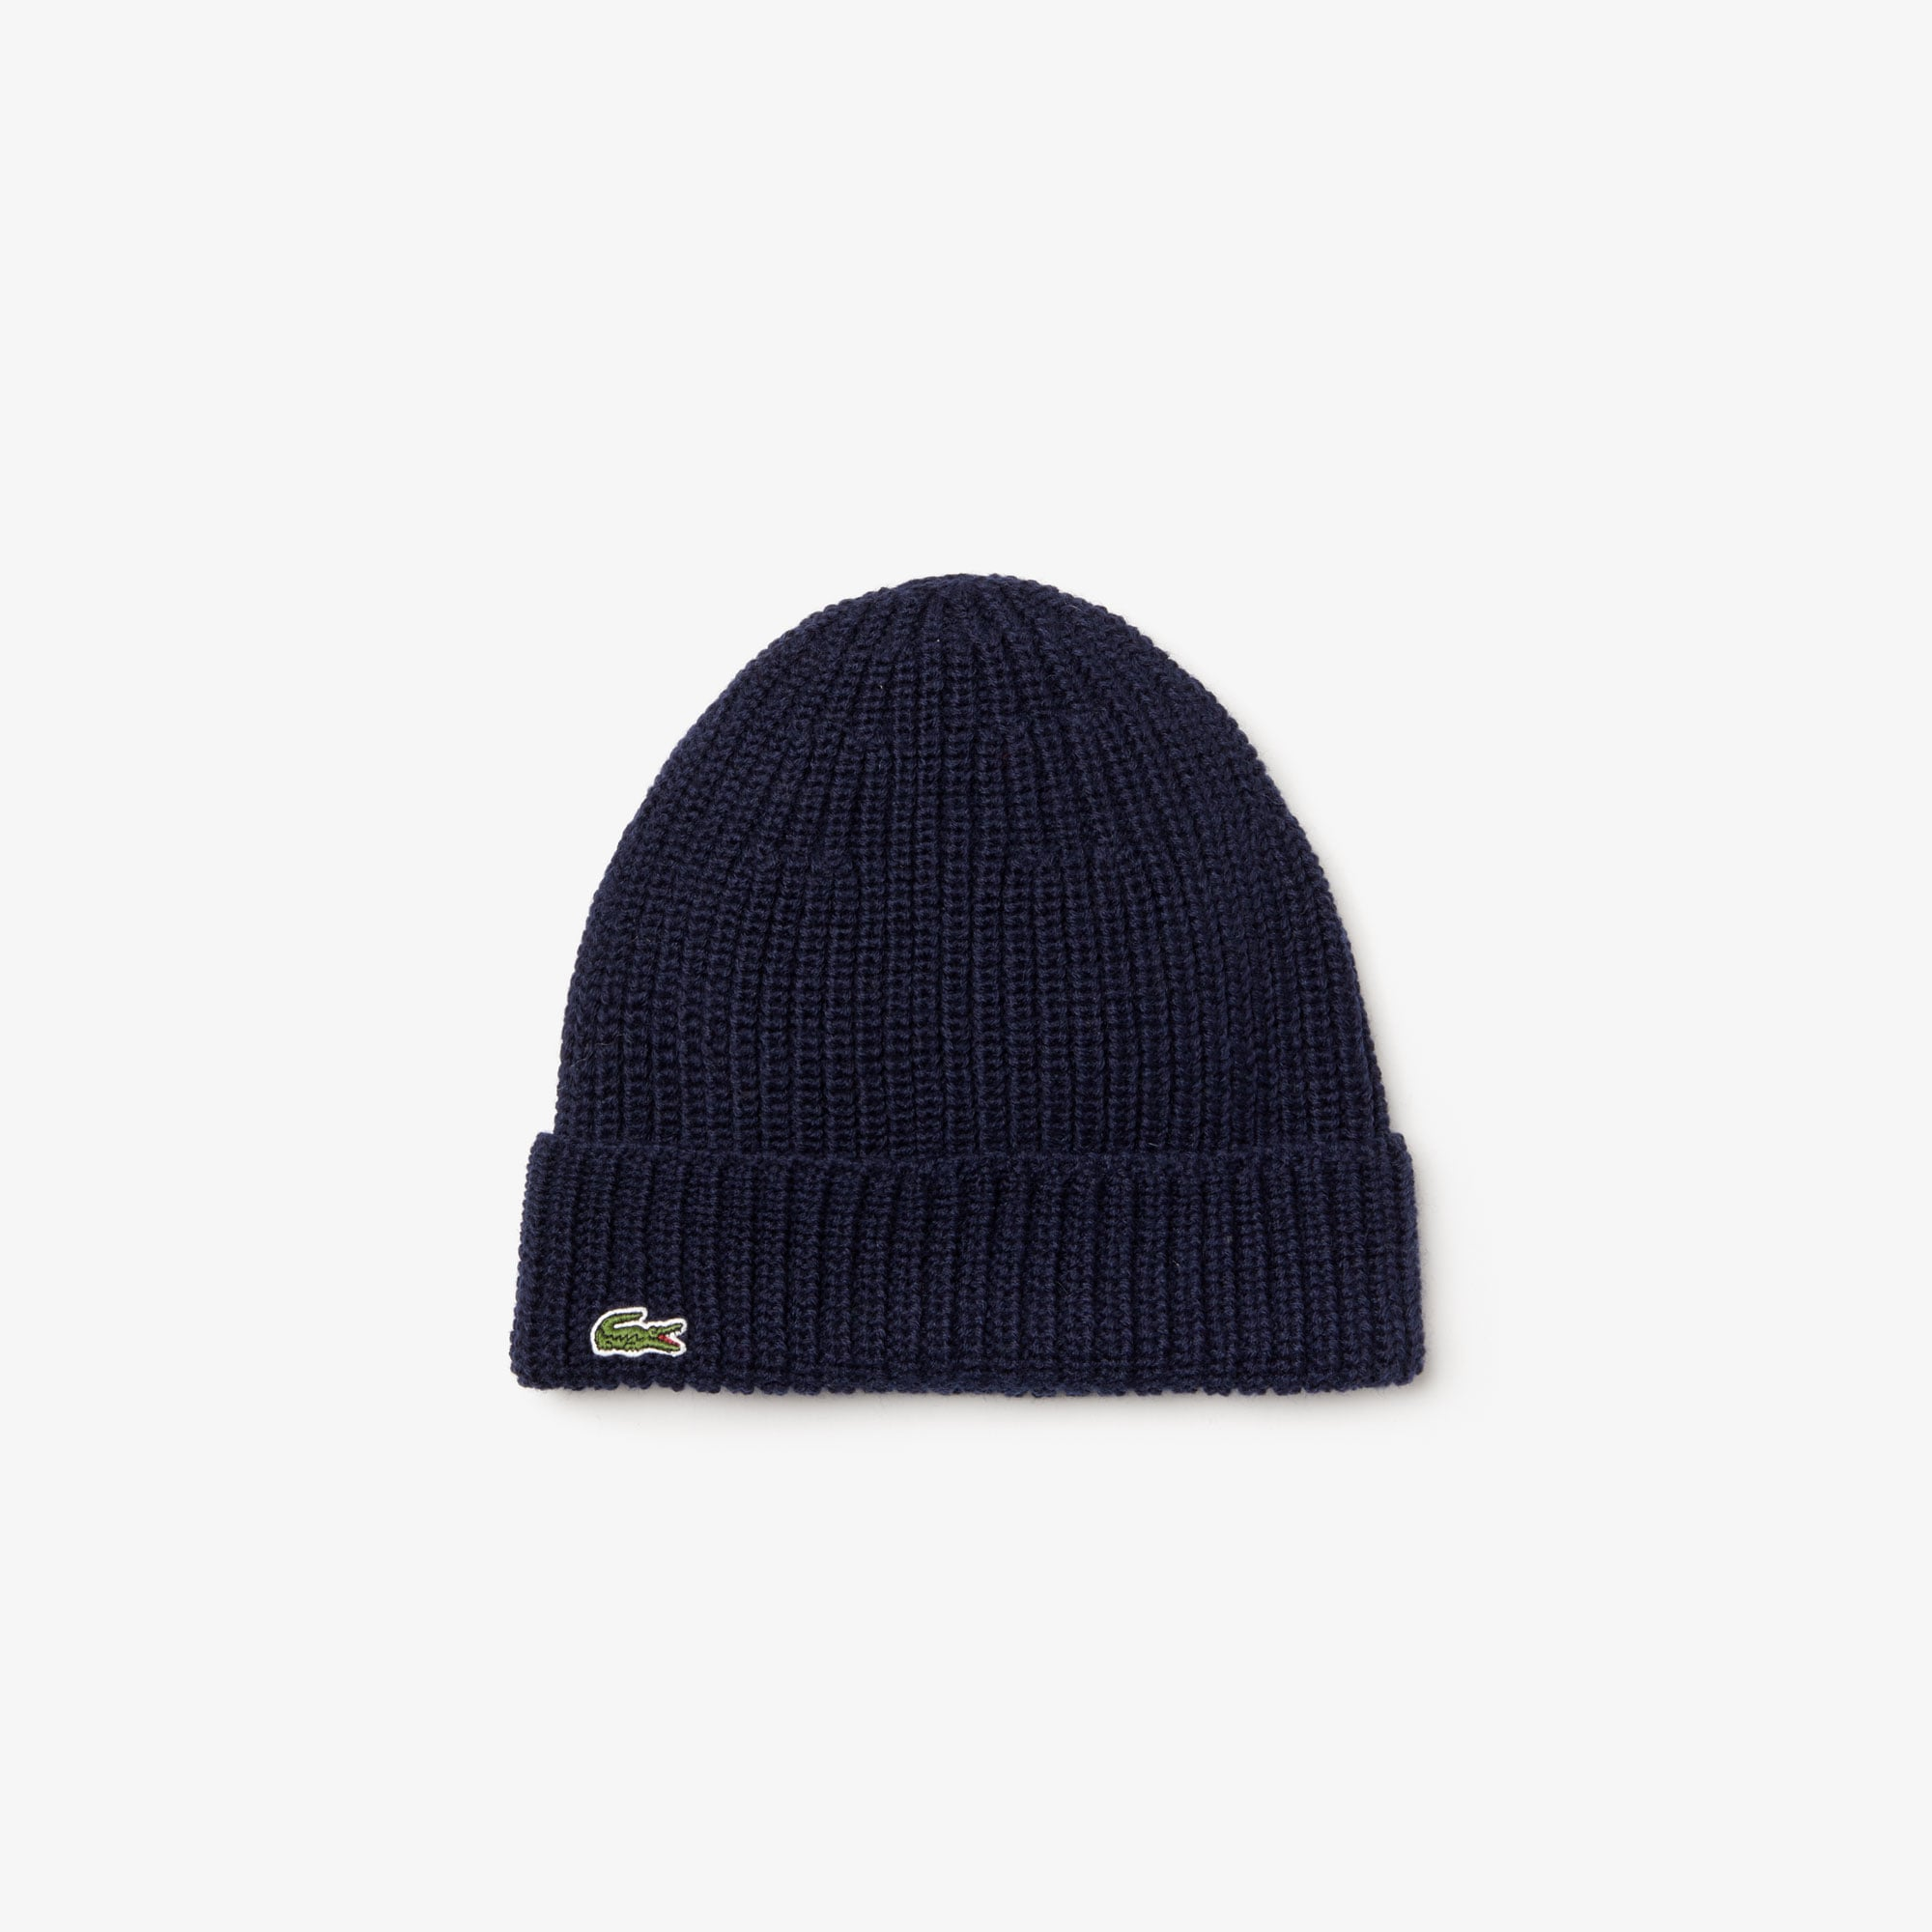 Men's Turned Edge Ribbed Wool Beanie